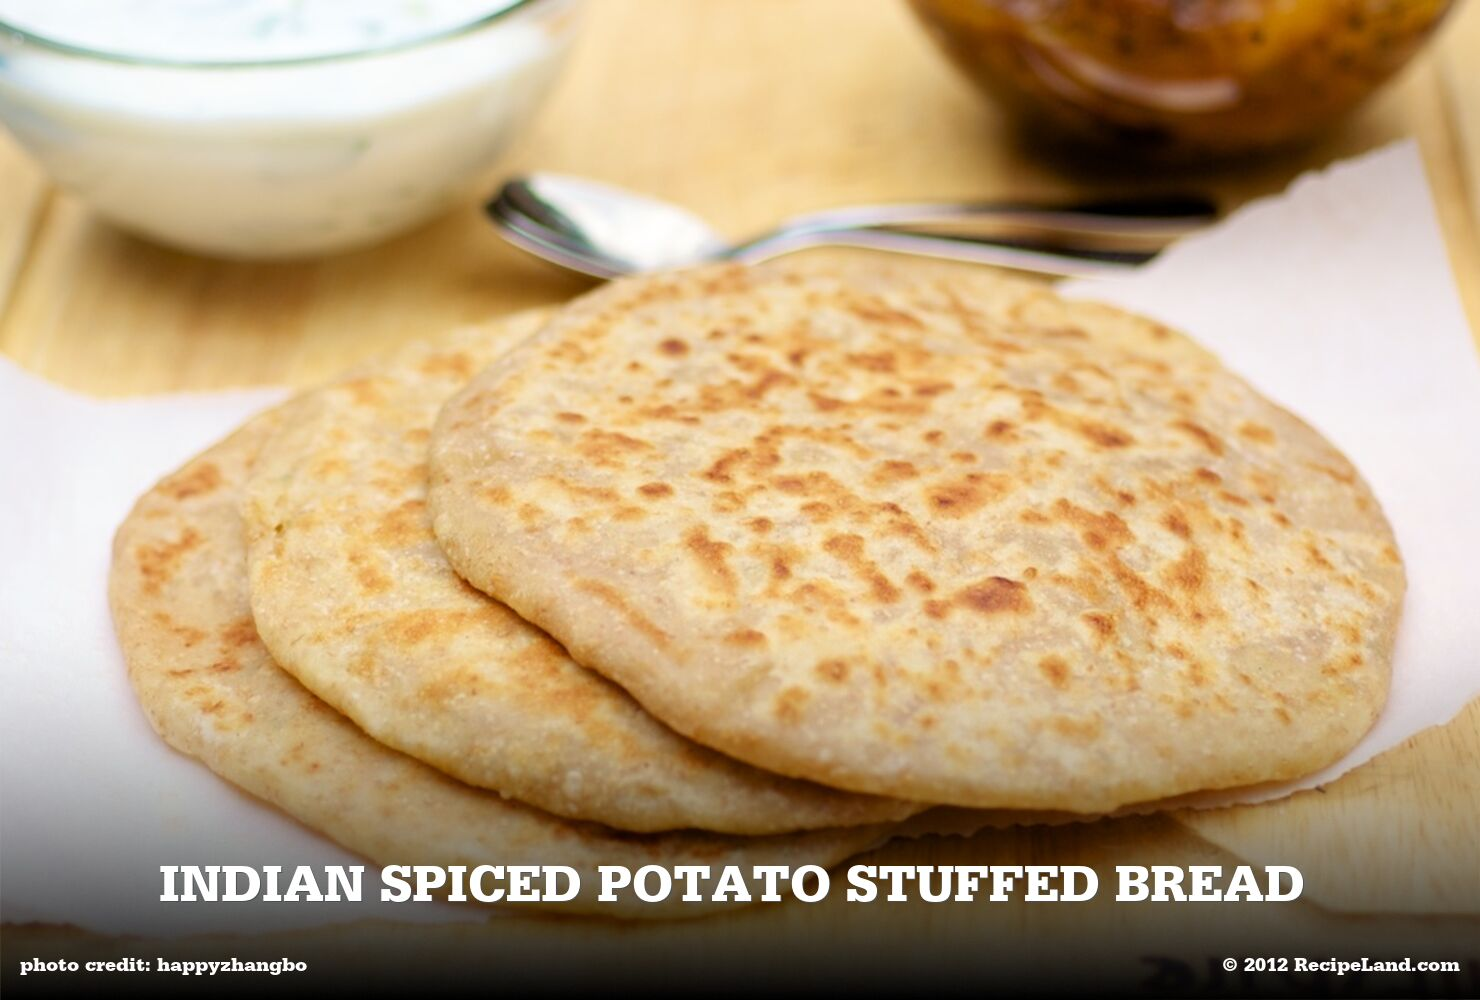 Indian Spiced Potato Stuffed Bread